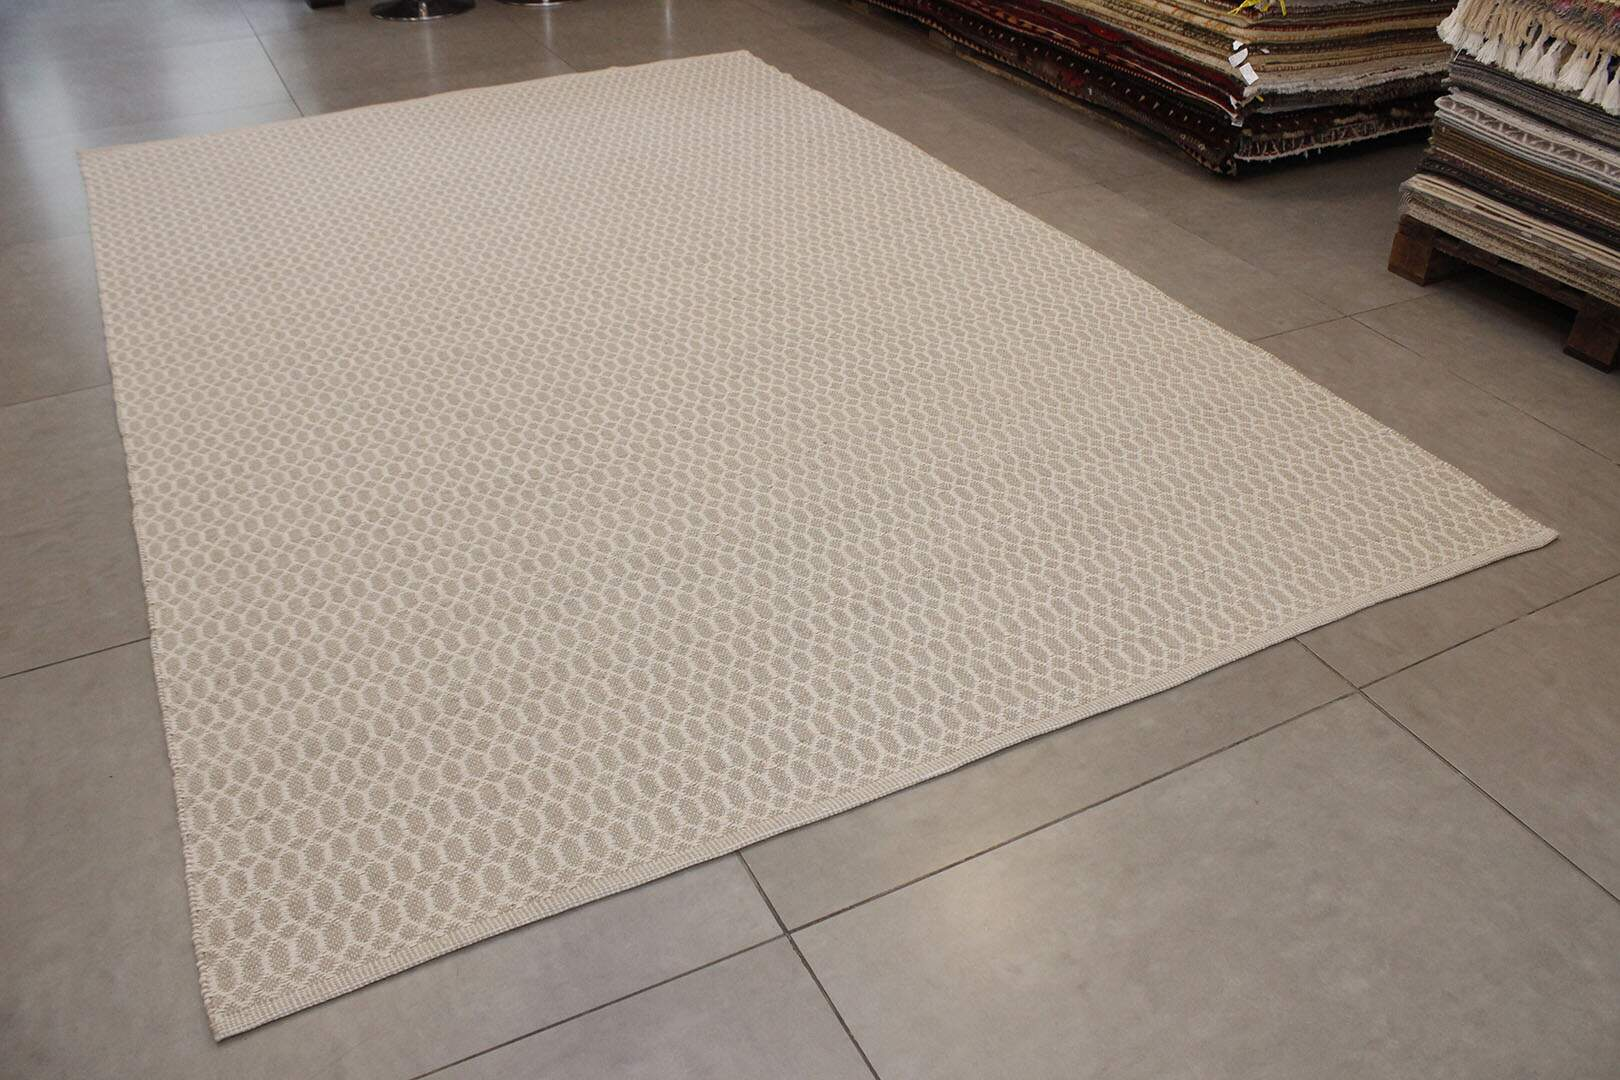 Tapete Kilim Indiano Sirsi Algodão Bege Natural 2,00 x 3,00m